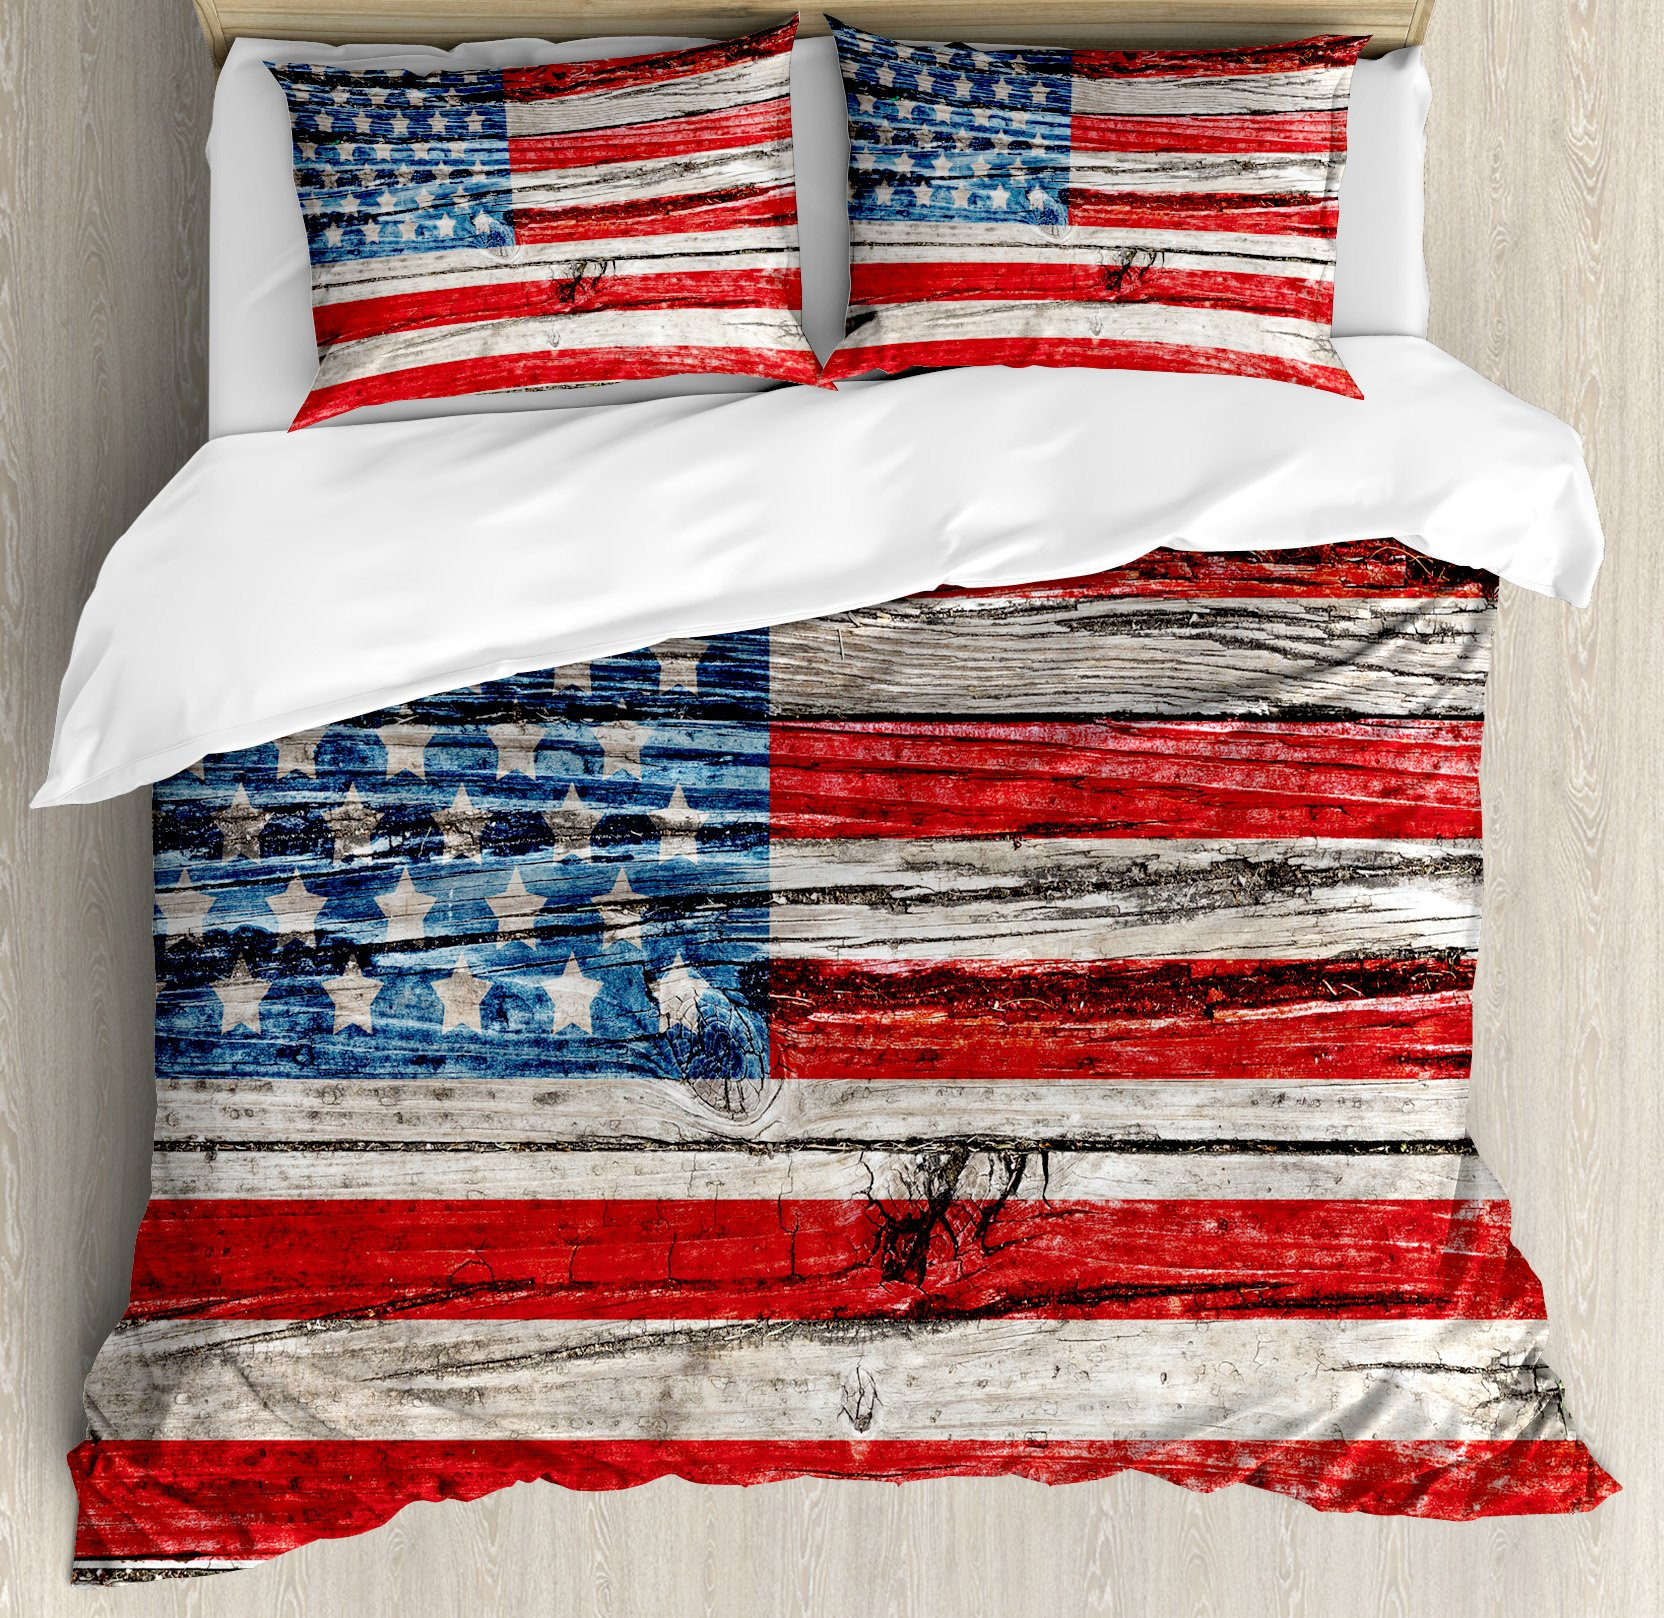 Ambesonne Rustic American USA Flag Duvet Cover Set Queen Size, Fourth of July Independence Day Painted Wooden Panel Wall Looking Image Freedom, Decorative 3 Piece Bedding Set with 2 Pillow Shams